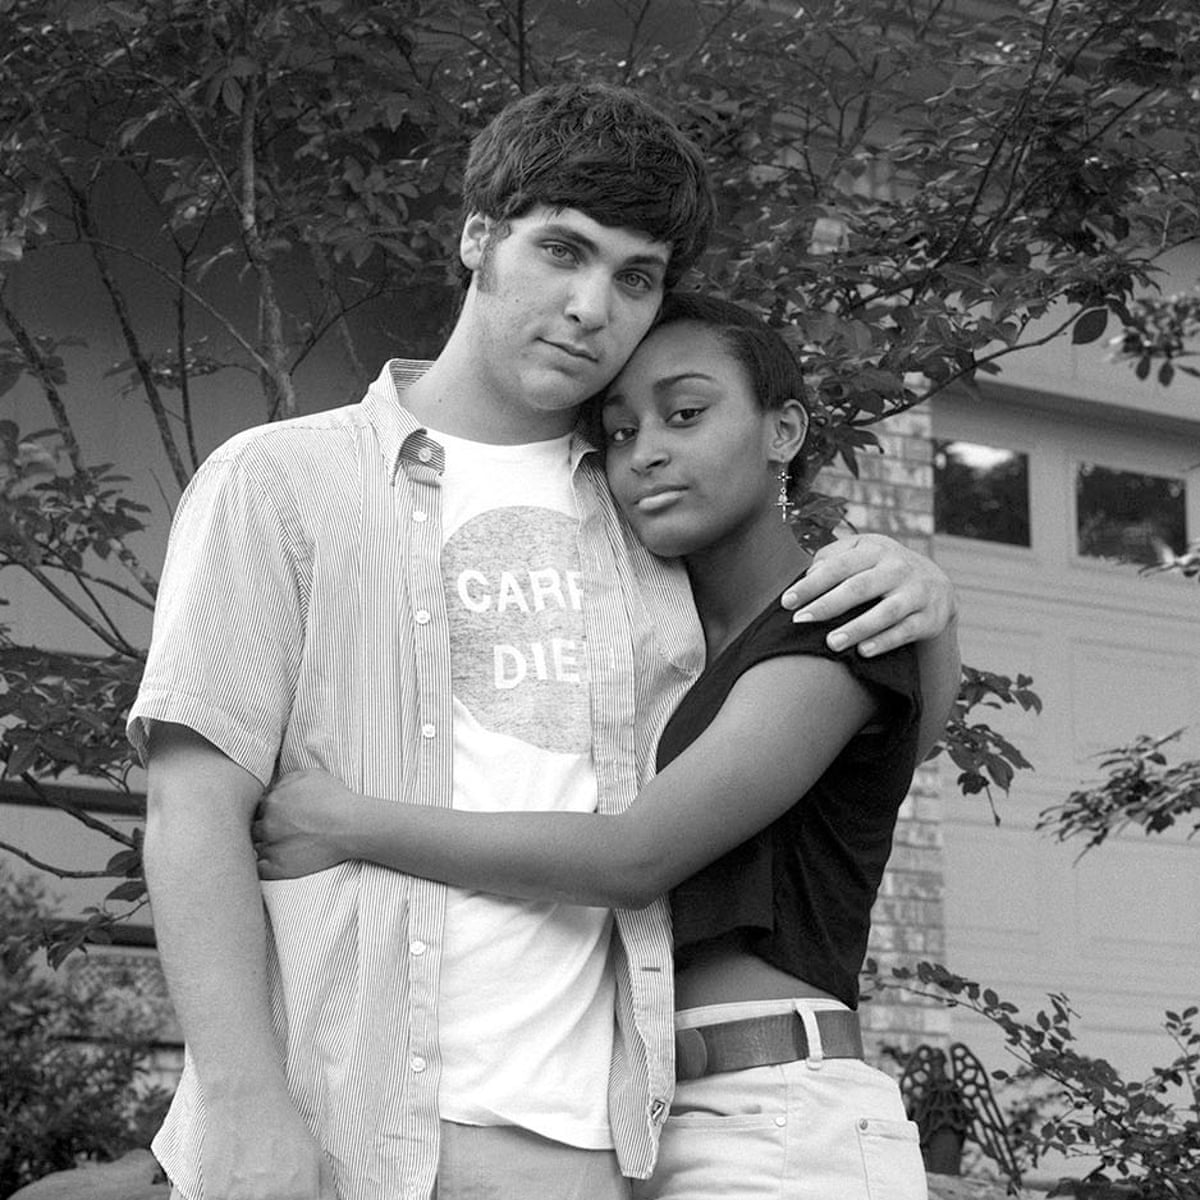 Black and white interracial dating